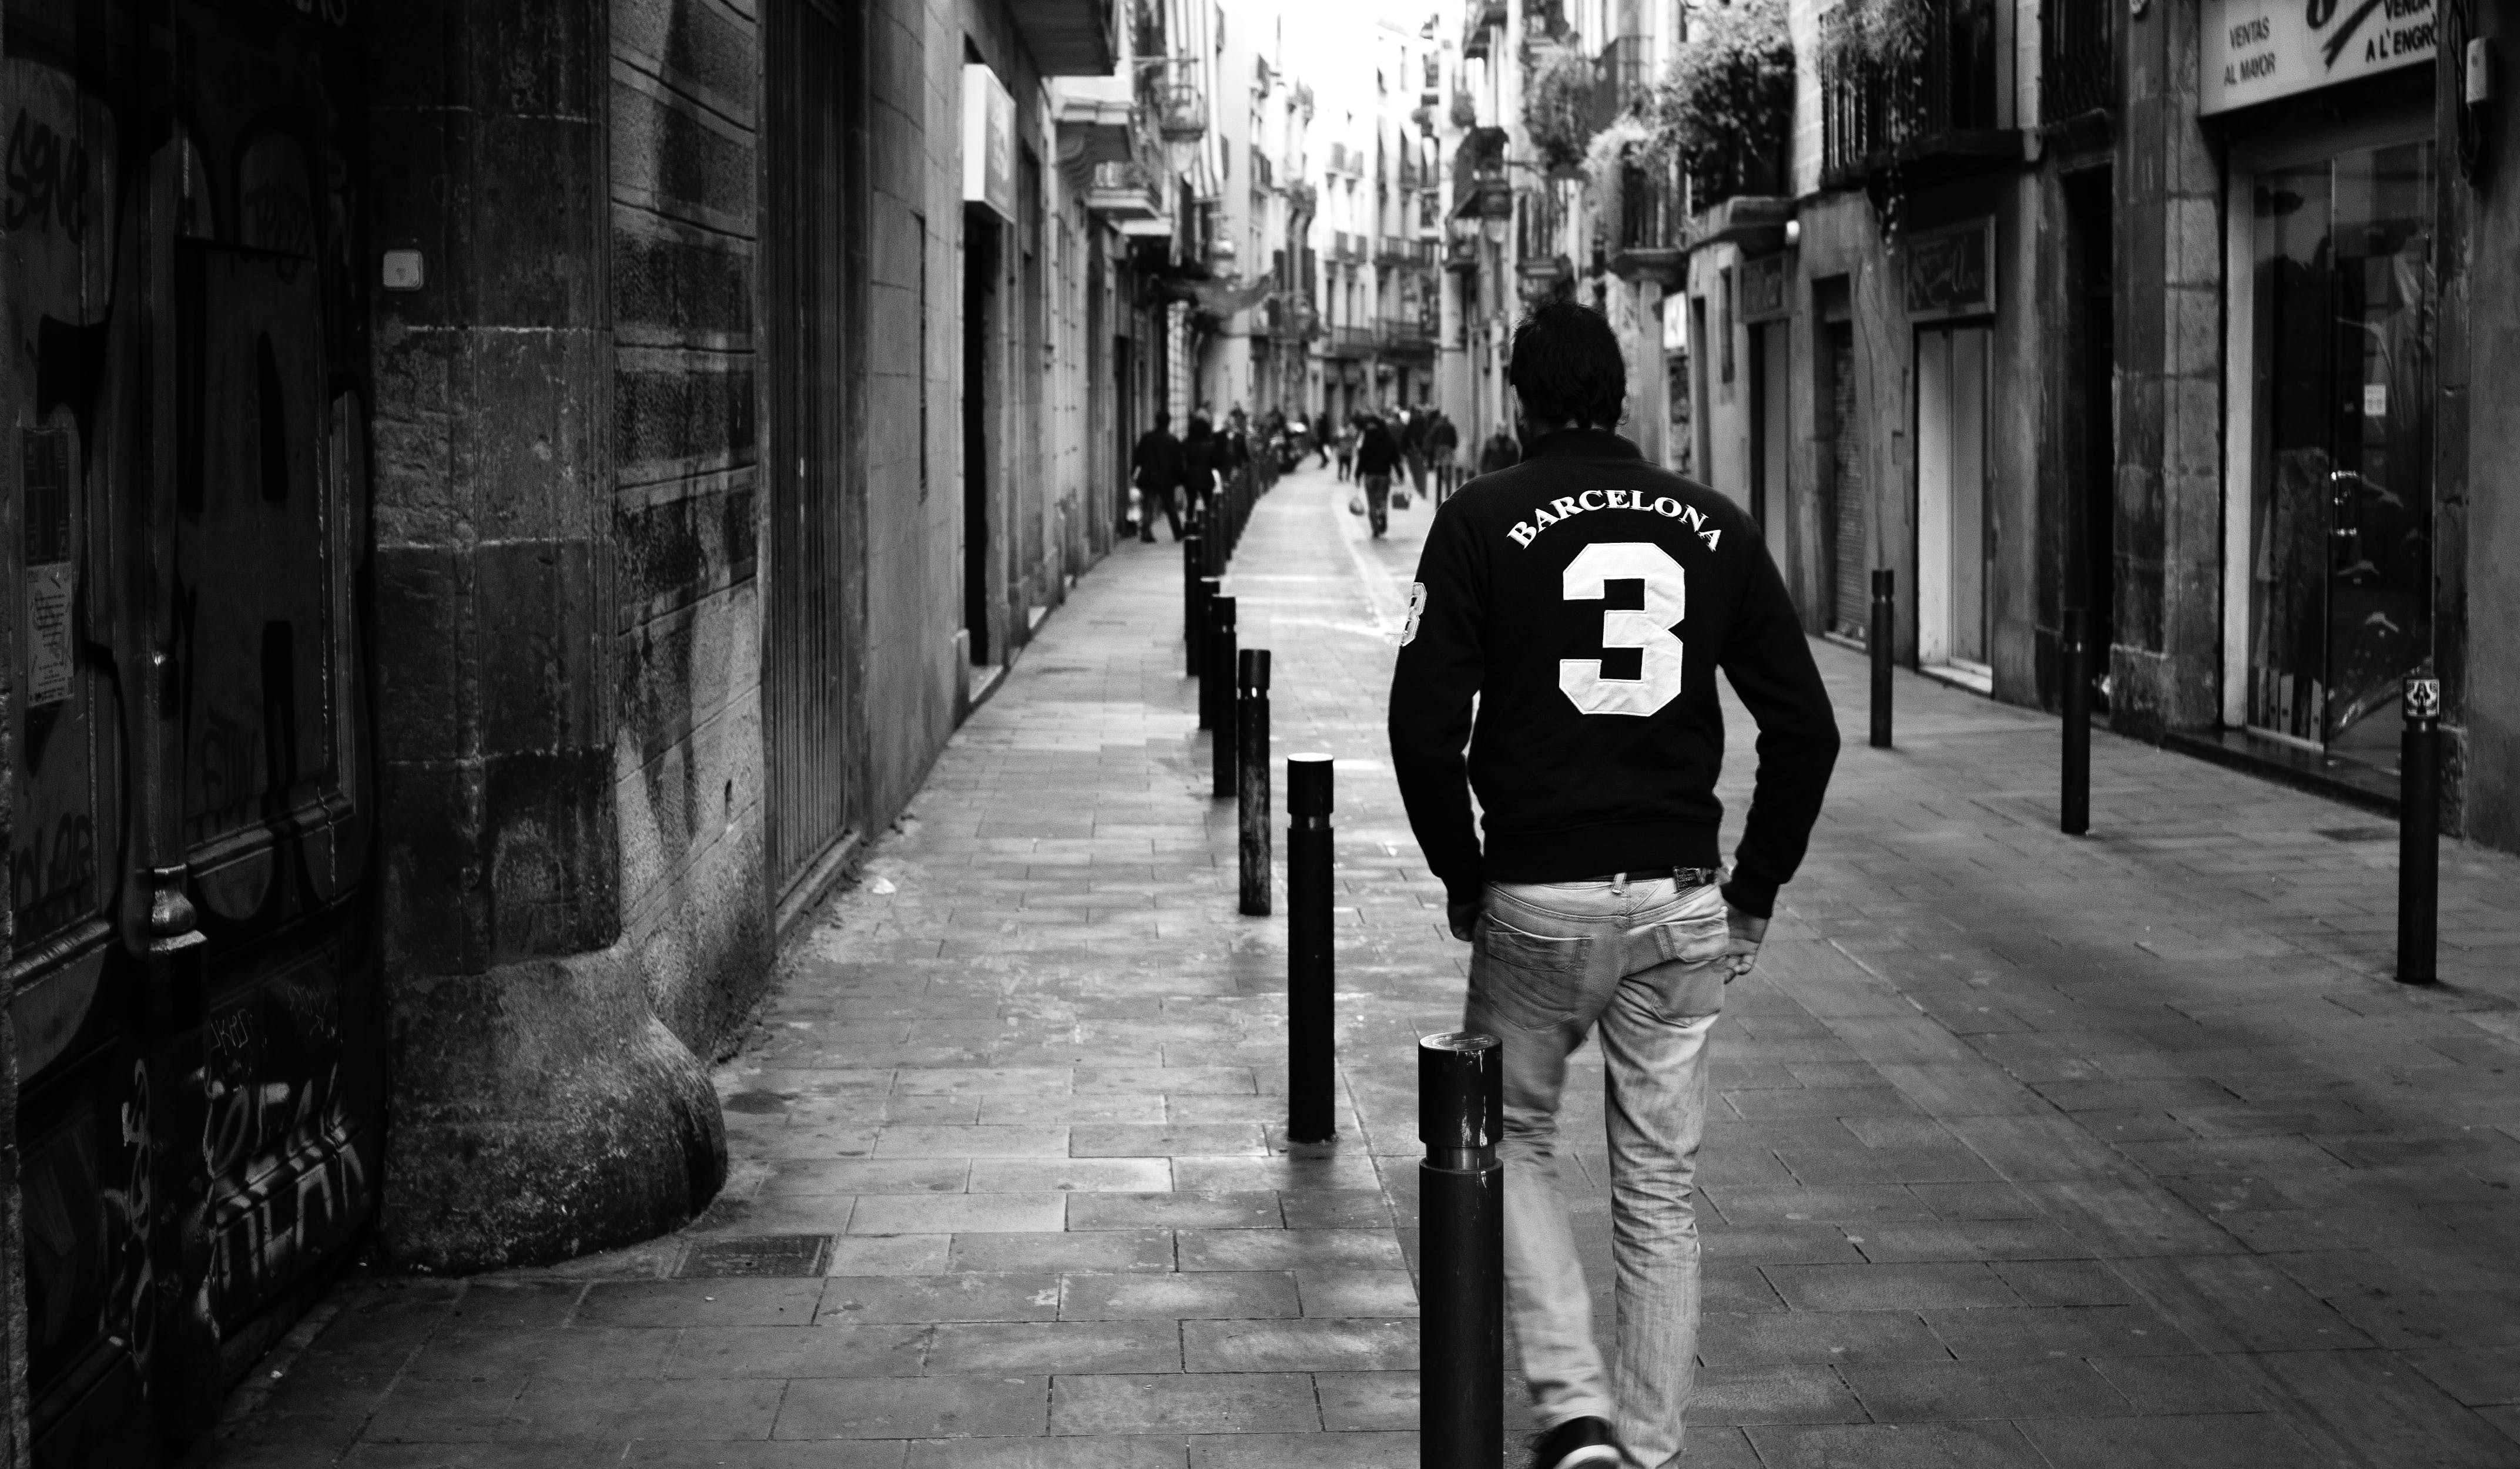 Grayscale Photo of Man Wearing Long-sleeved Shirt and Pants Walking on Concrete Pathway Near Building